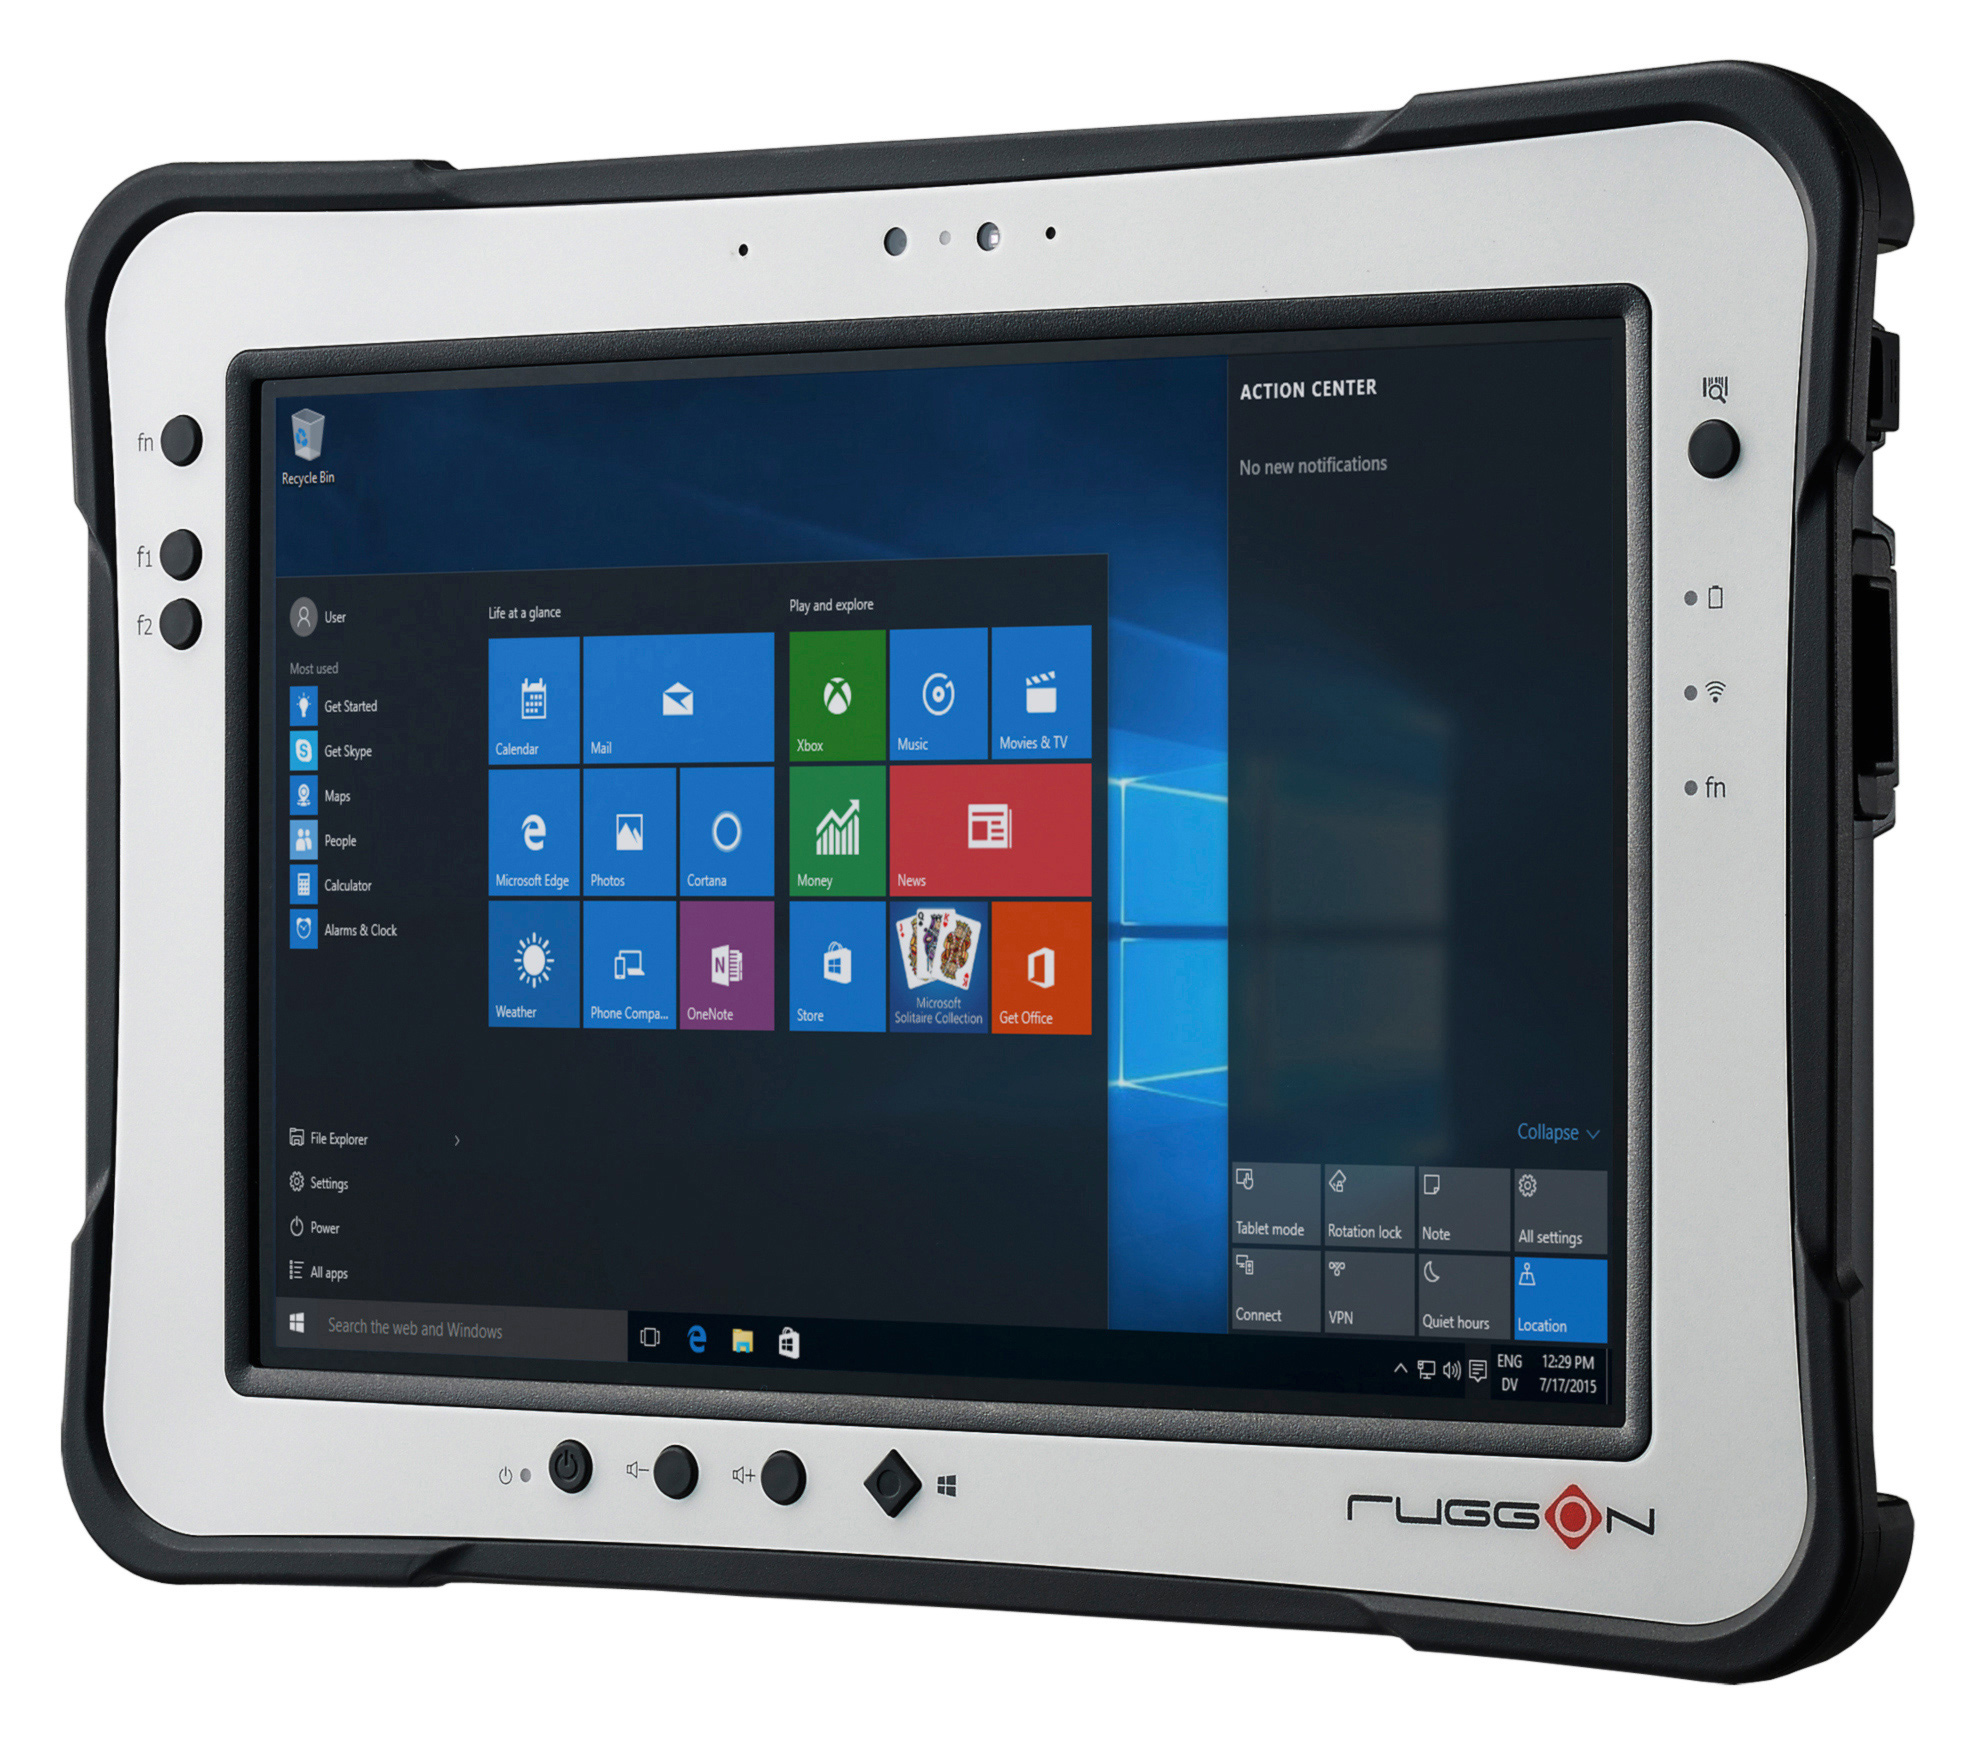 10.1 inch, IP65, MIL-810G, 5 feet drop resistant,rugged tablet